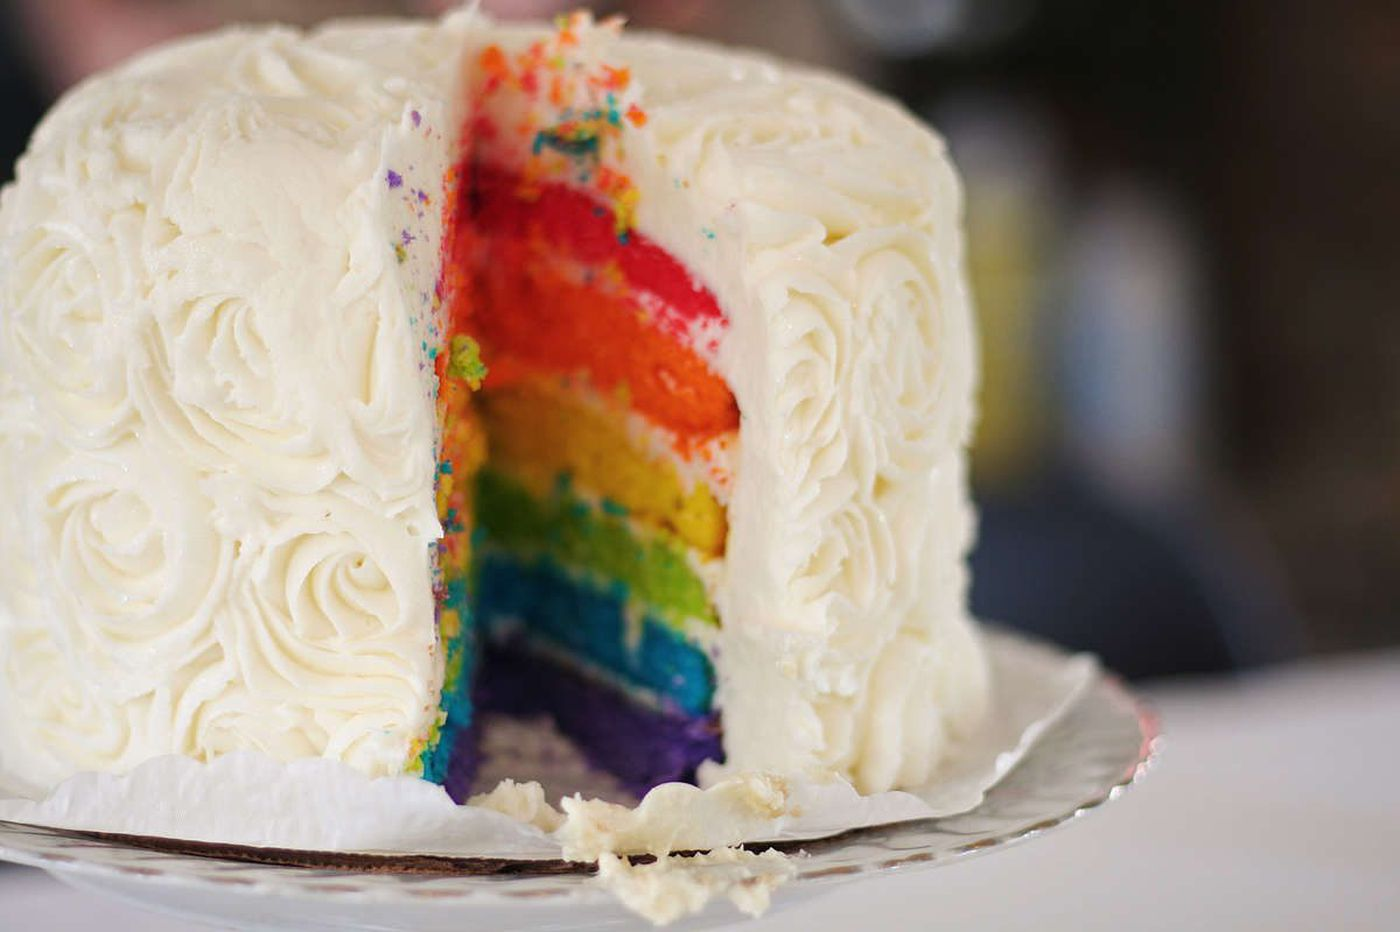 Religious baker who refused to make a wedding cake for gay couple deserves protection whether you agree with him or not  | Opinion